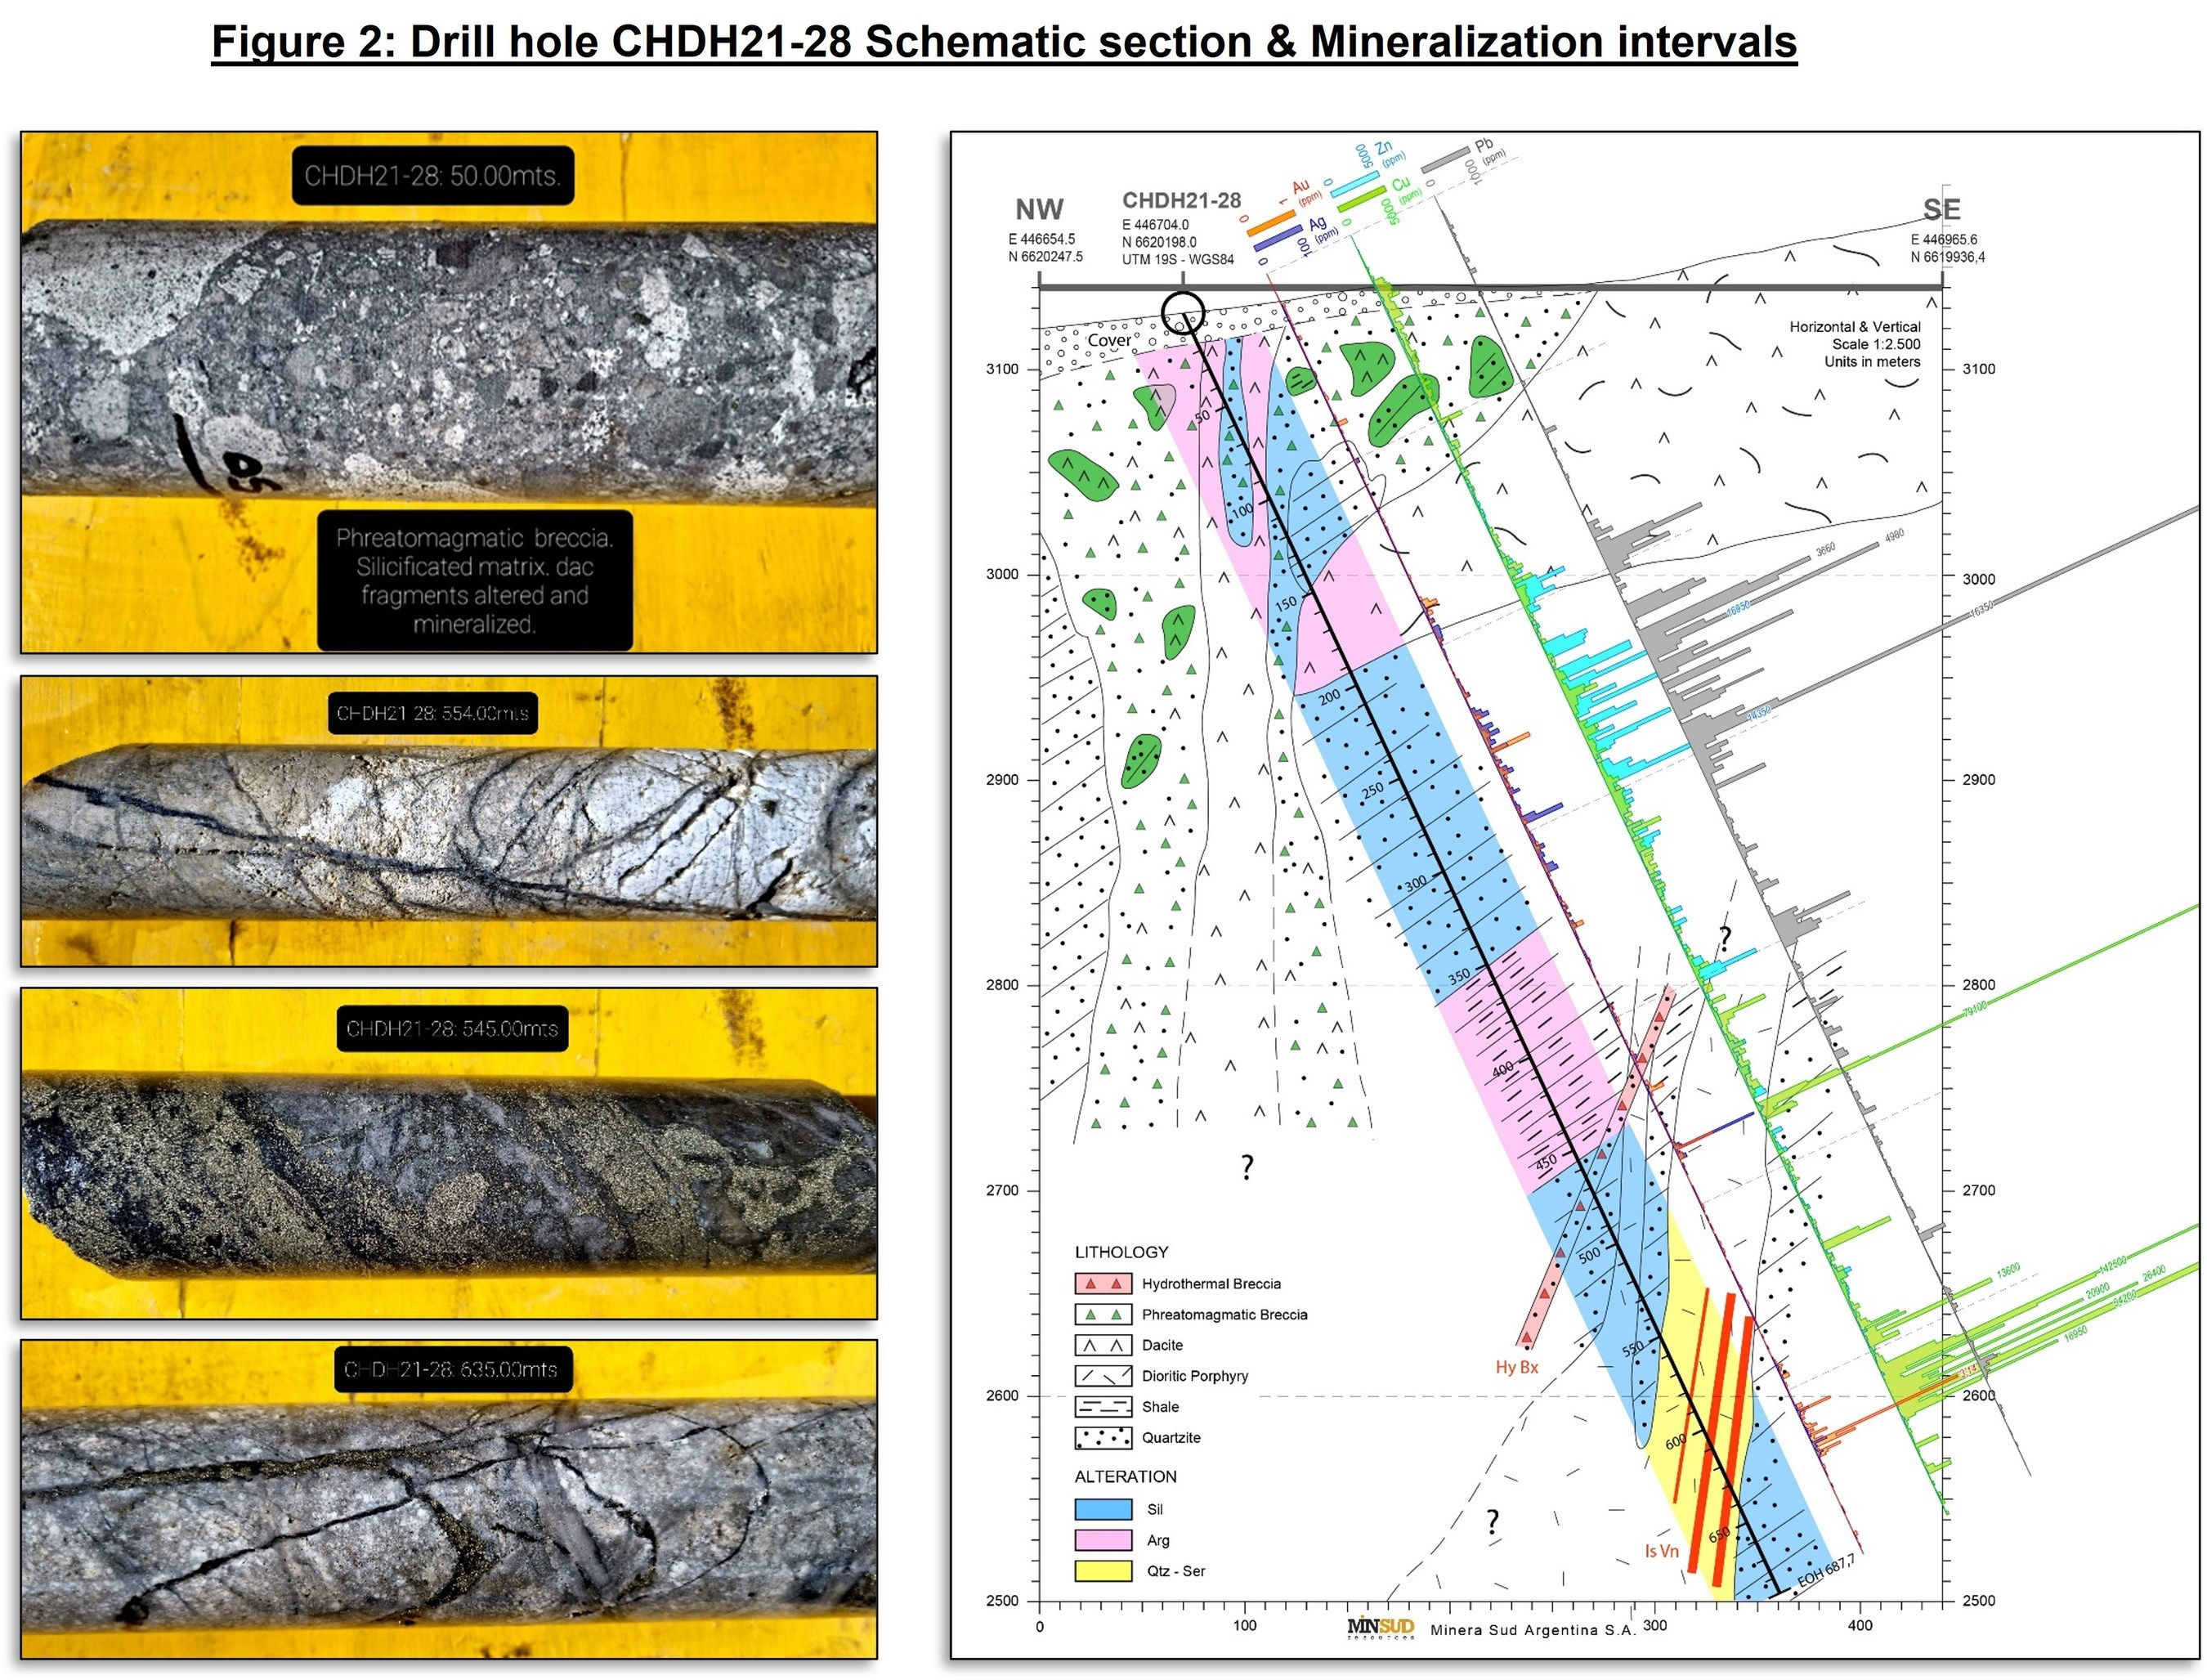 Figure 2: Drill hole CHDH21-28 Schematic section & Mineralization intervals (CNW Group/Minsud Resources Corp.)